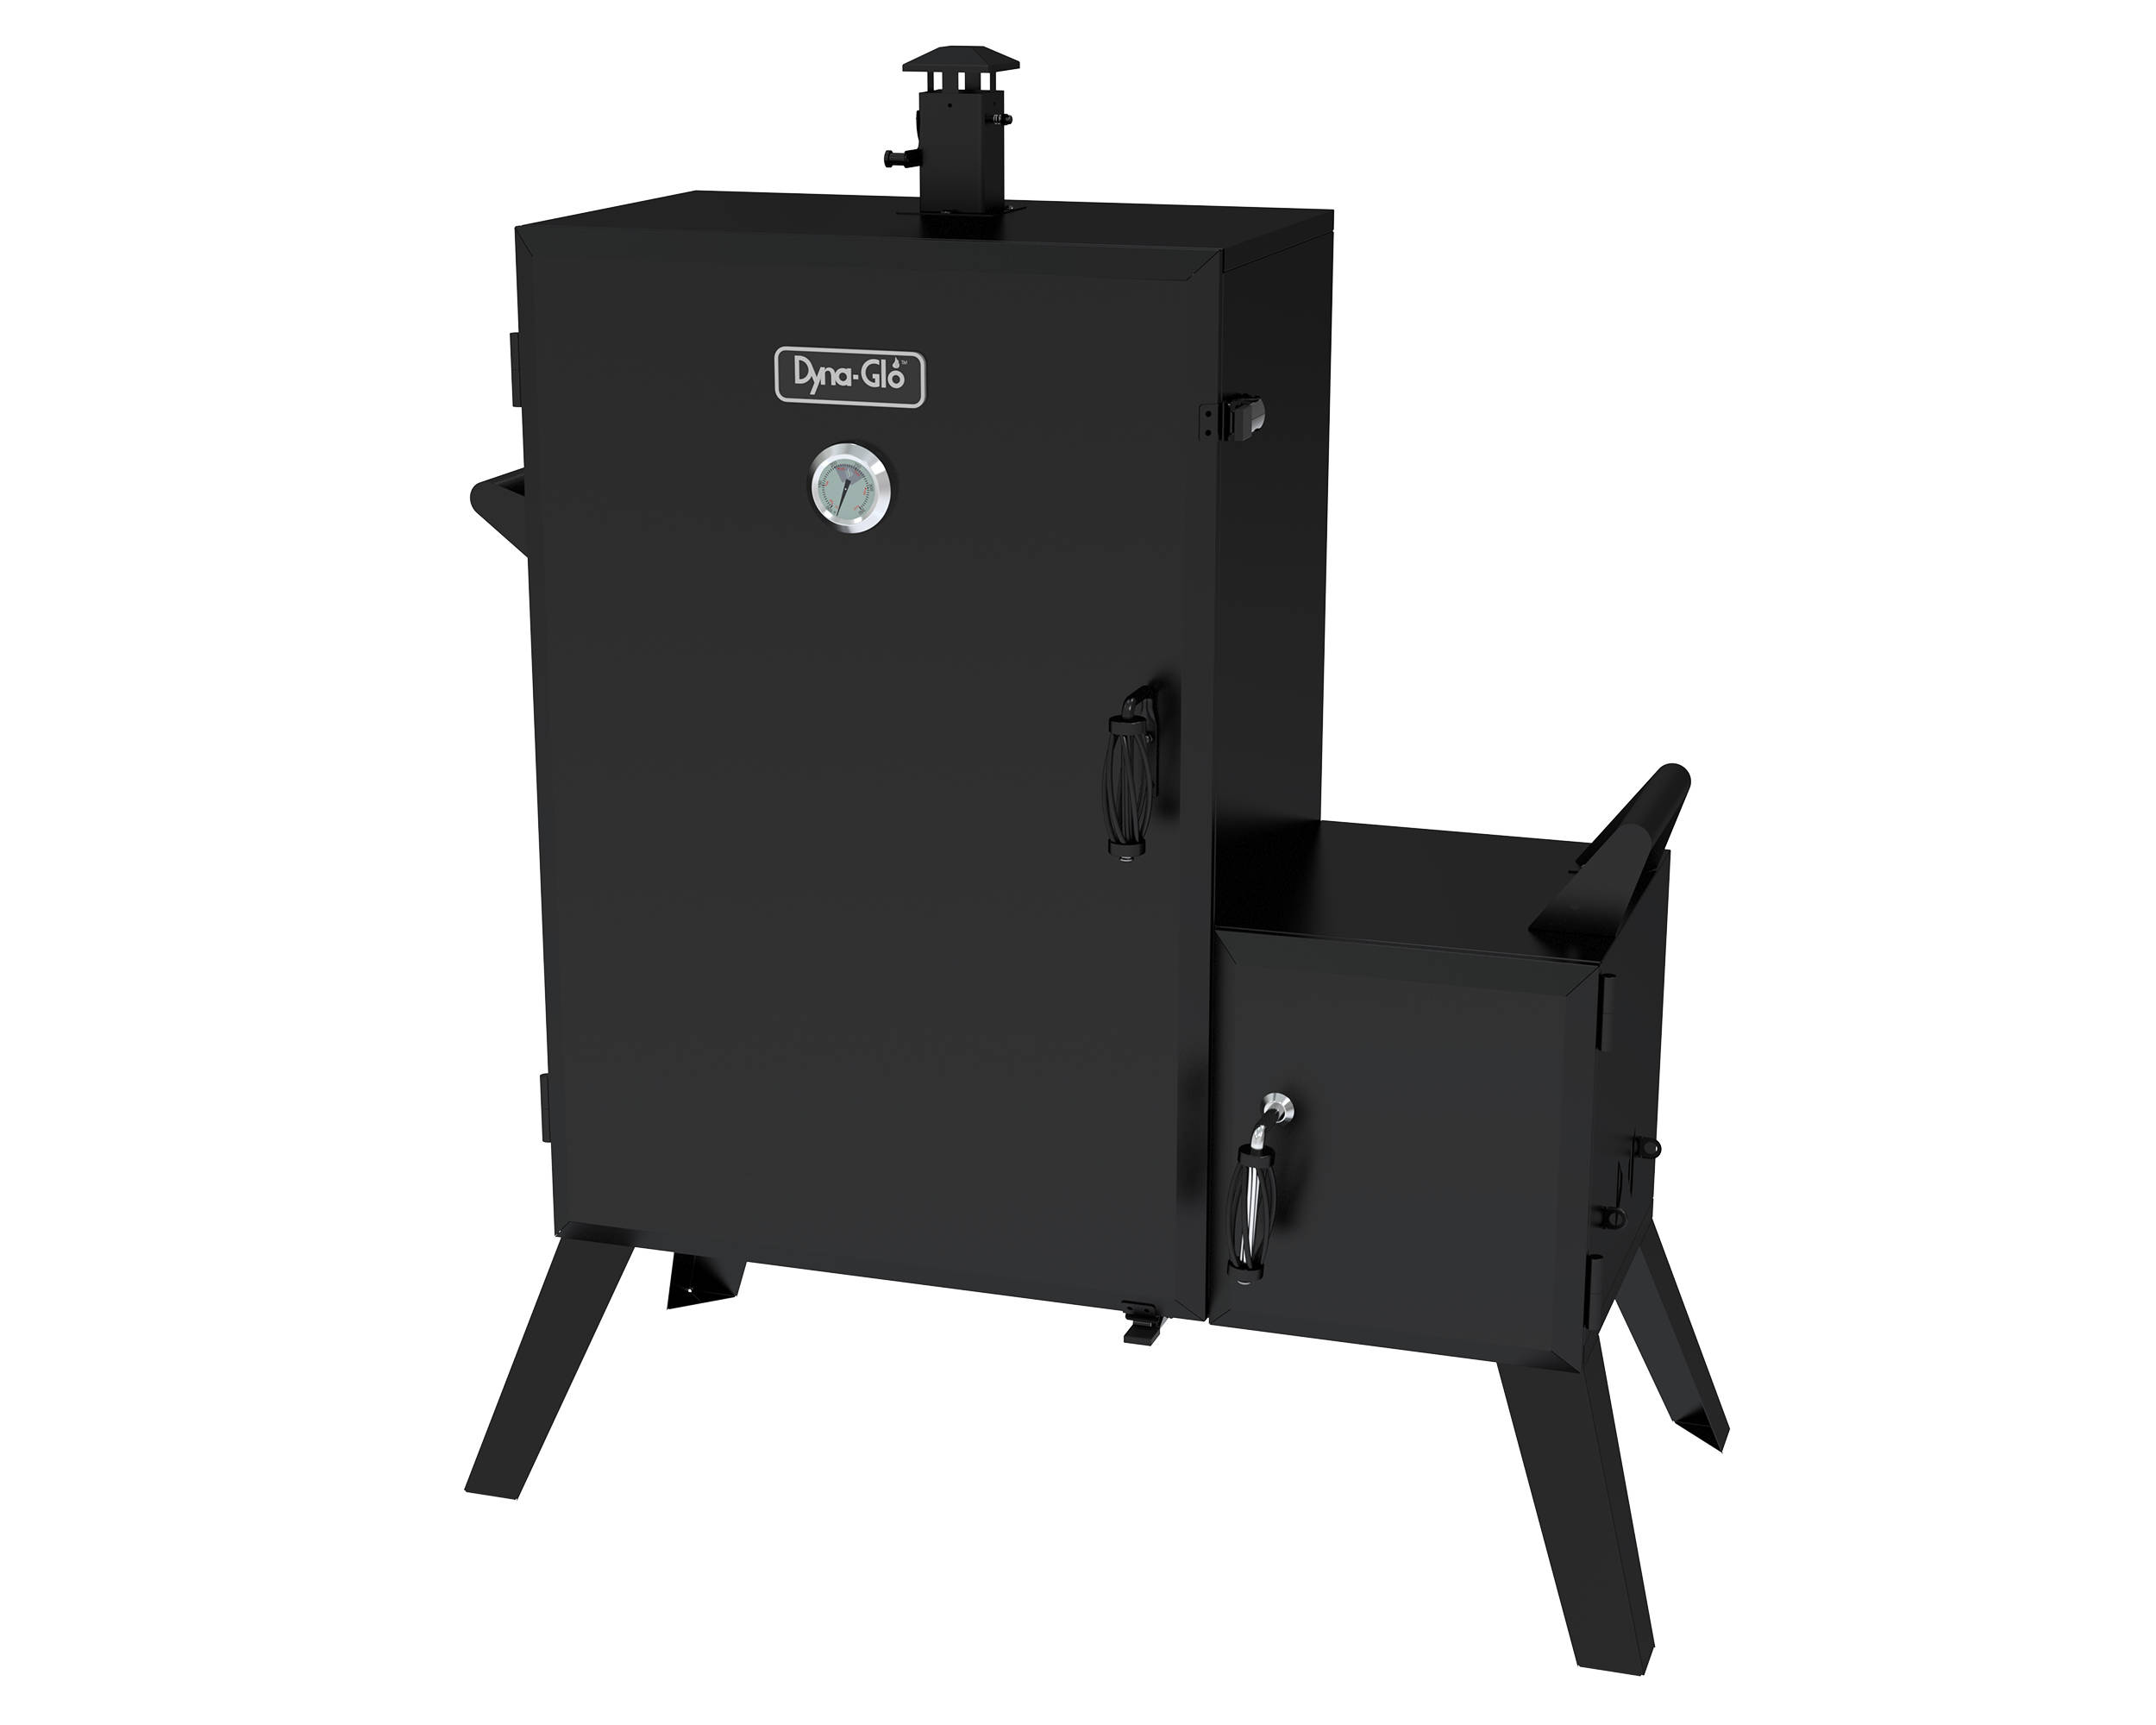 dyna glo propane smoker manual